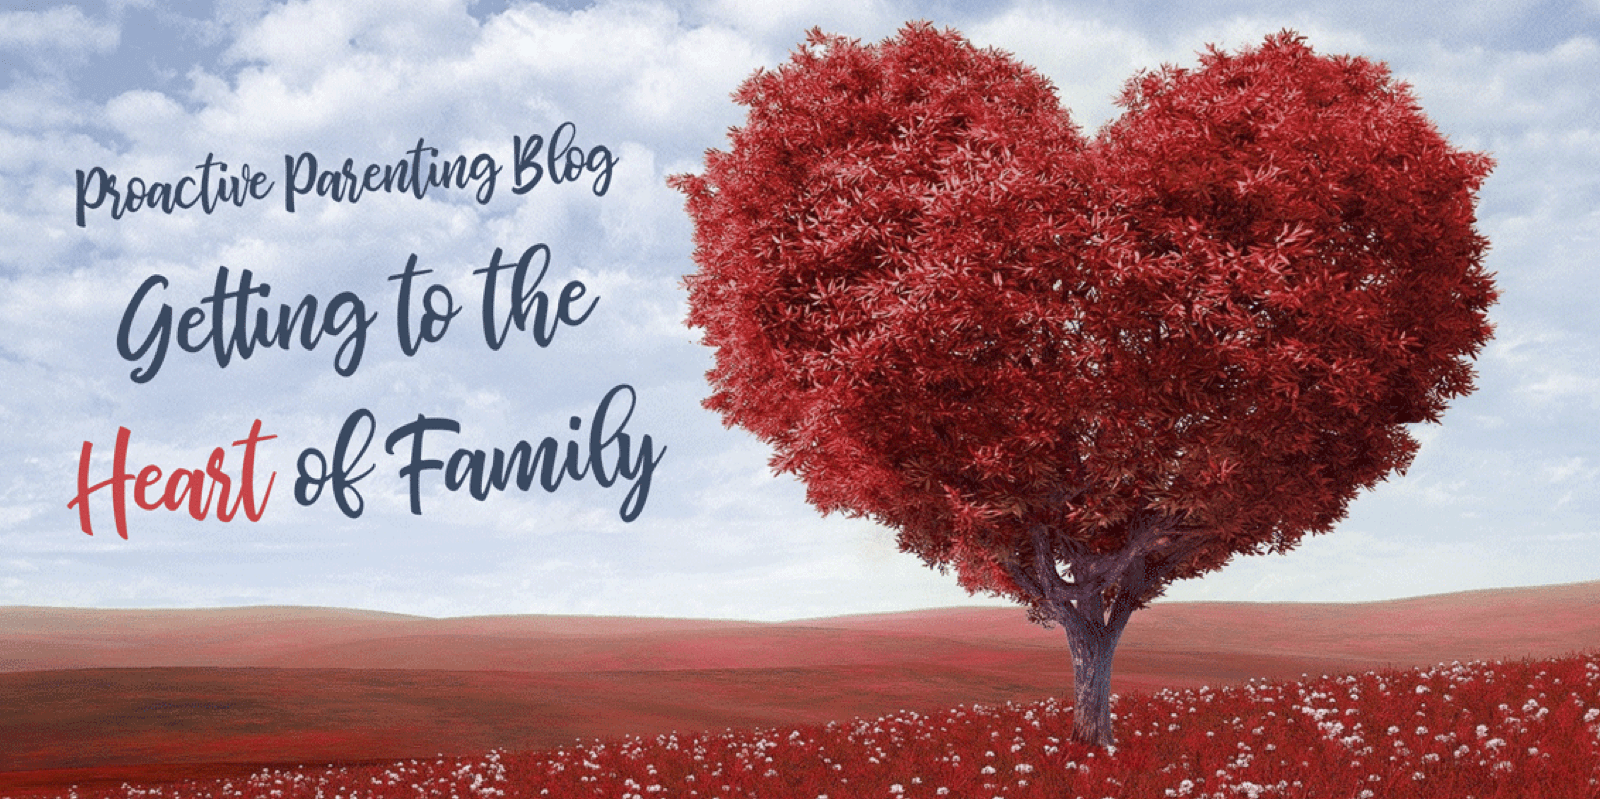 Painting announcing Proactive Parenting's 'Getting to the Heart of the Matter' blog